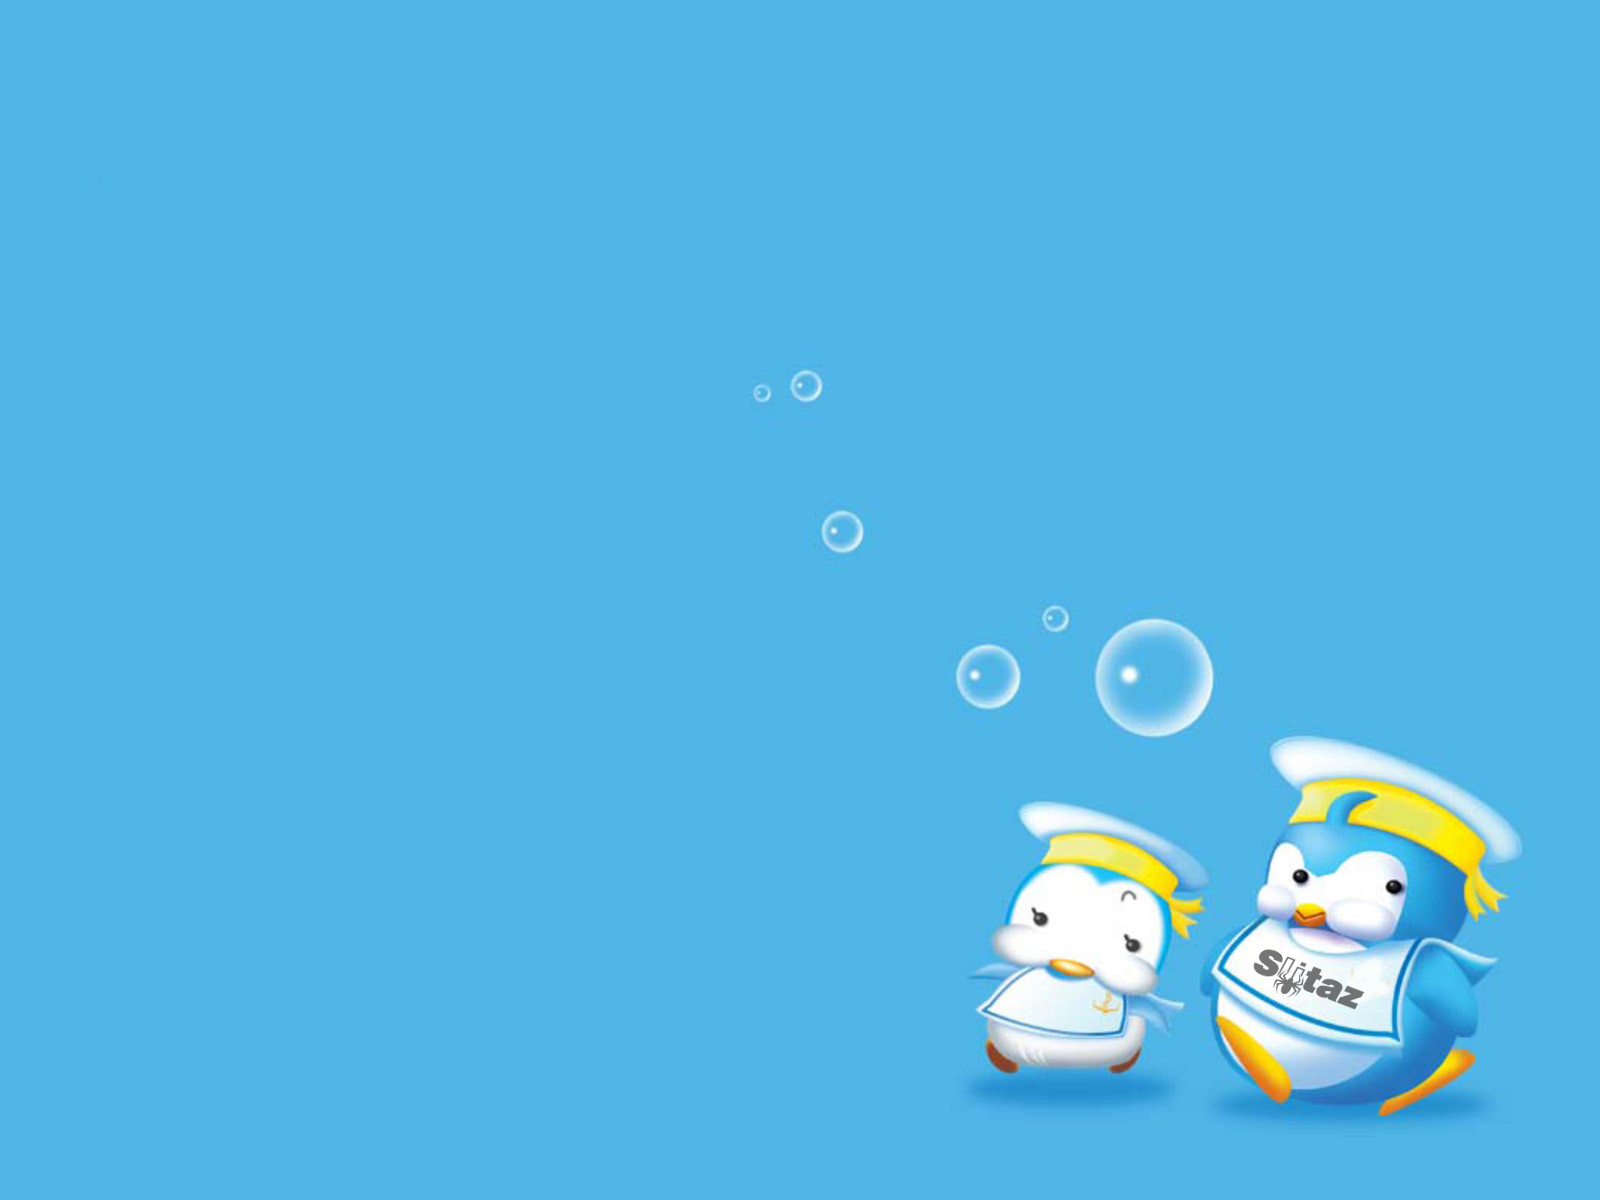 Cute Cartoon Penguin Desktop Wallpaper 9264   Ongur 1600x1200